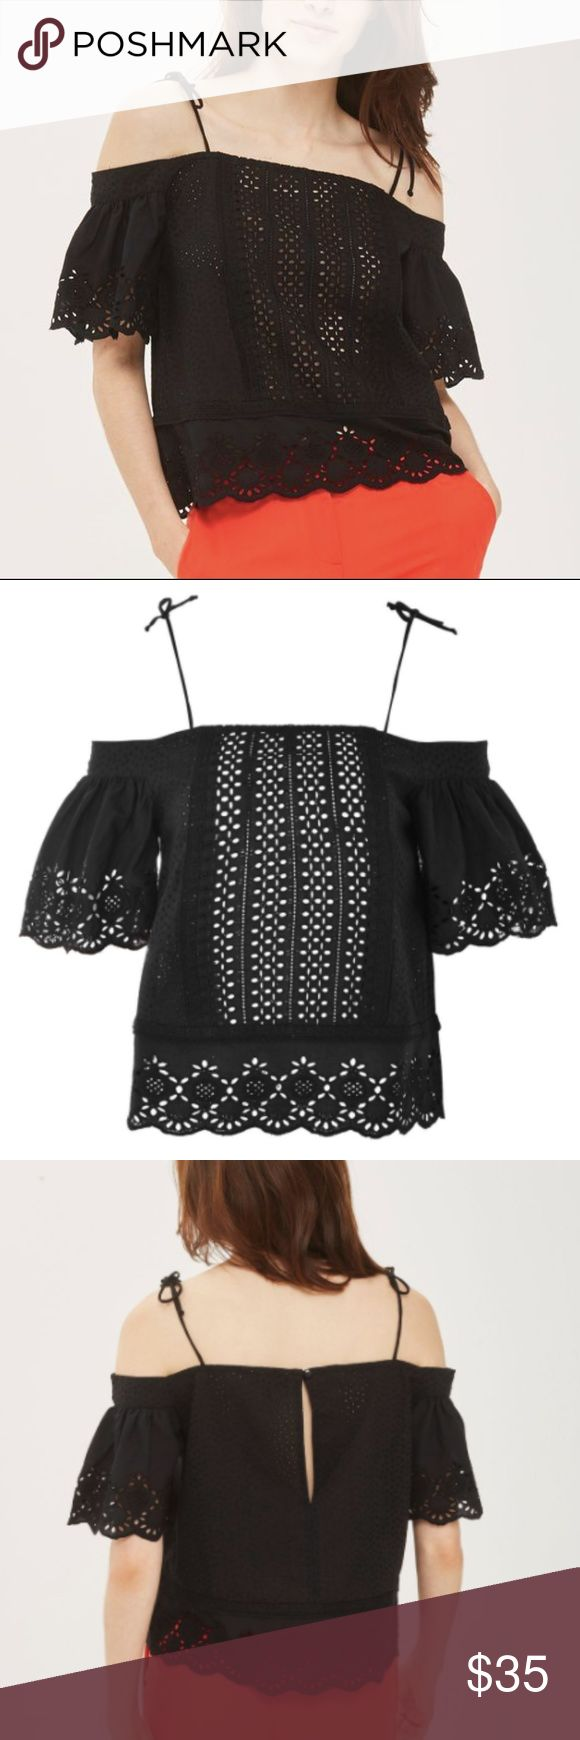 Eyelet Bardot Top Intricate broderie anglais furthers the vintage appeal of a breezy black top styled with fluttery, off-the-shoulder sleeves and delicate bow-tied straps. - Ties at the shoulders - Elbow-length sleeves - 100% cotton New with tags! UK Size 12 translates to a size 6 or 8, so labeled on Poshmark as a medium Topshop Tops Blouses